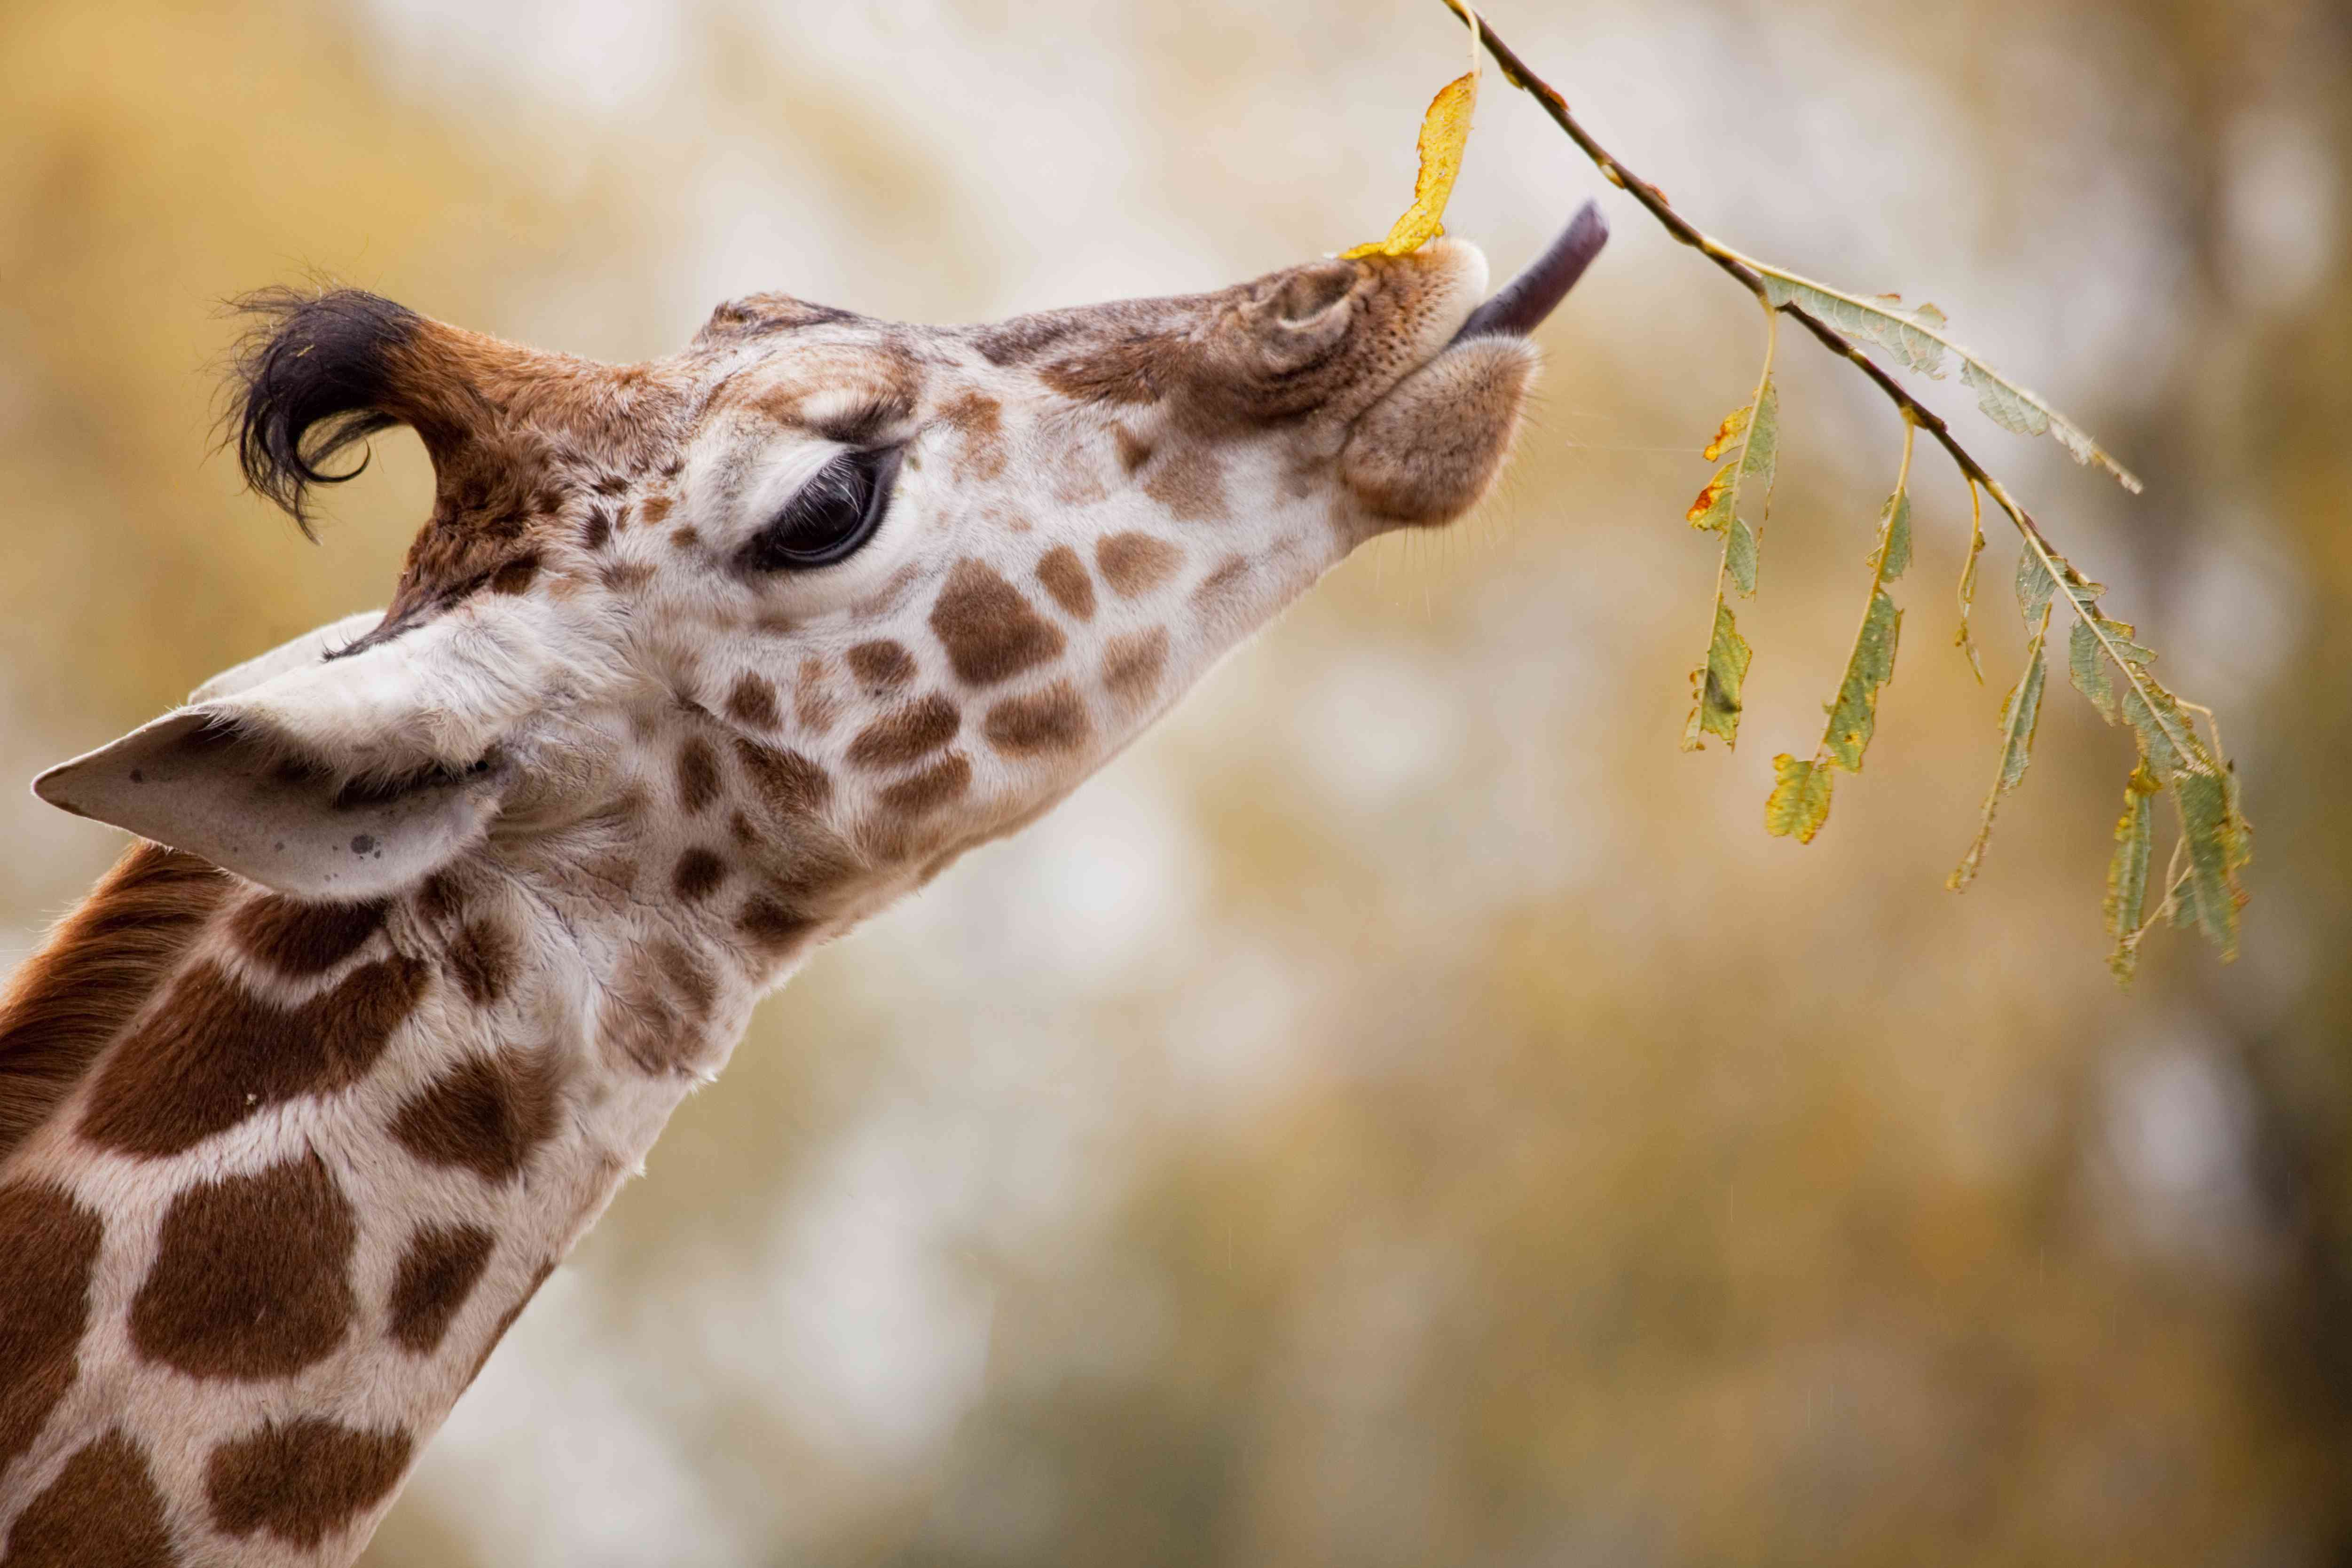 A giraffe eating a leaf at a zoo in Cheshire, England.